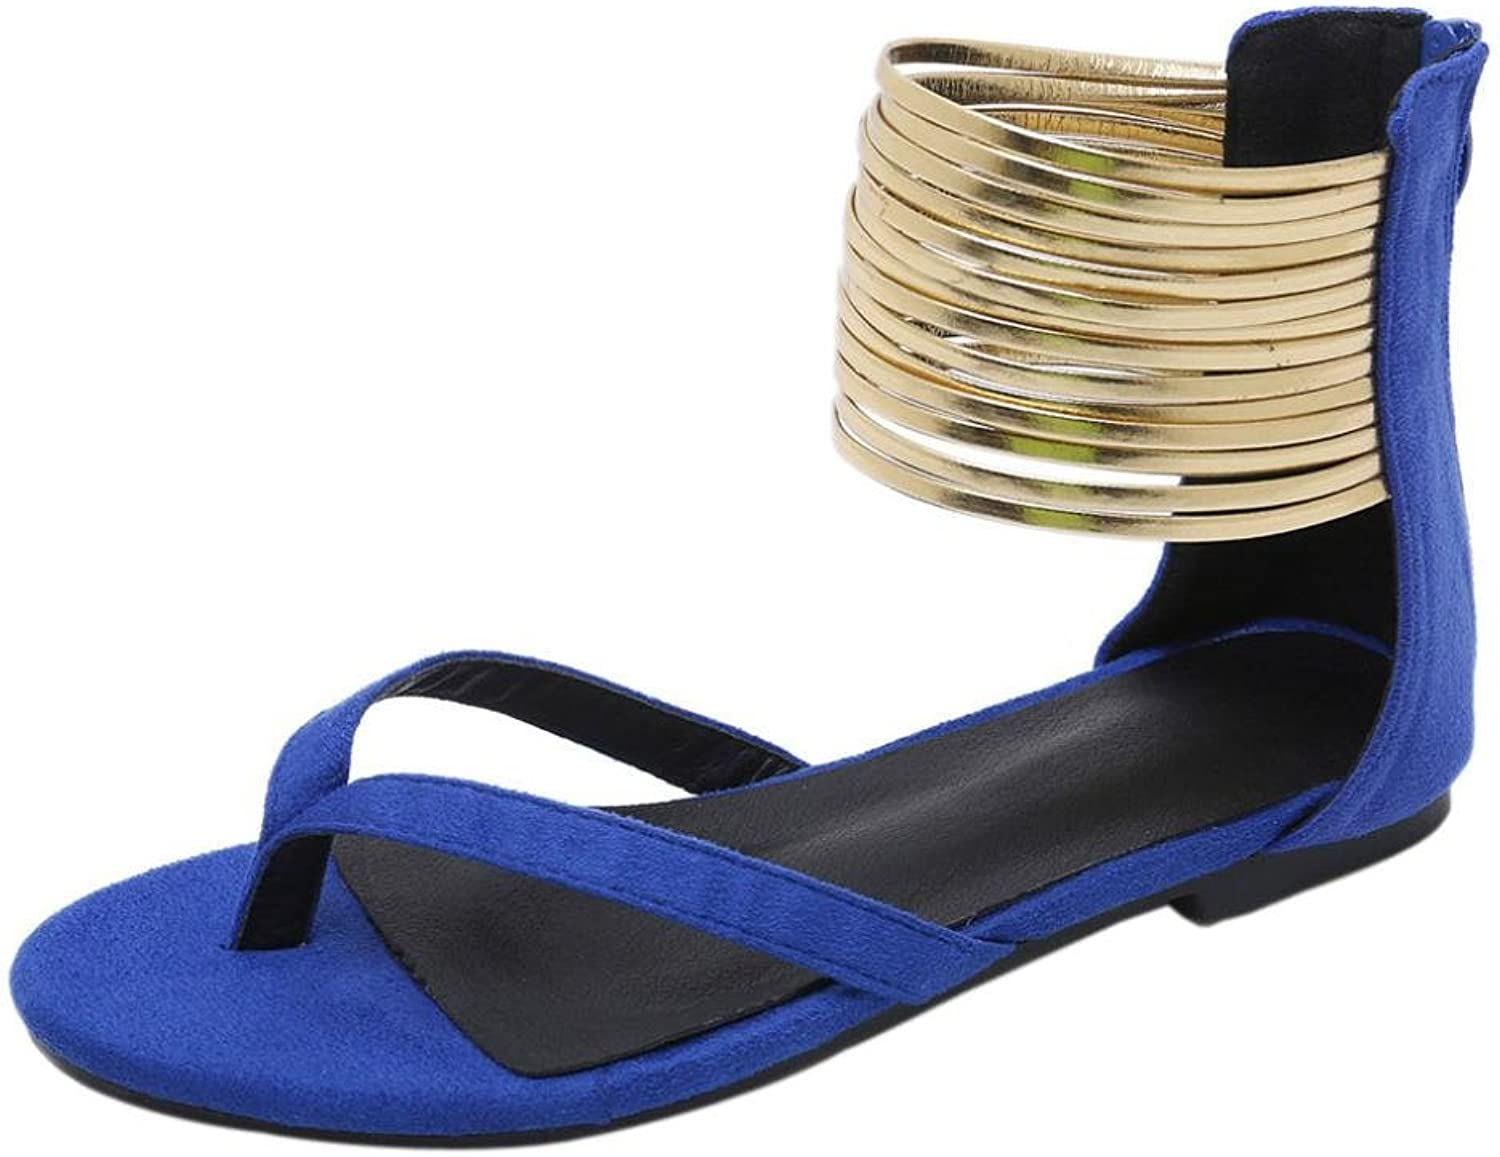 Goodtrade8 Universal Women's String Elastic Ankle Strap Flat Sandals Clip Toe